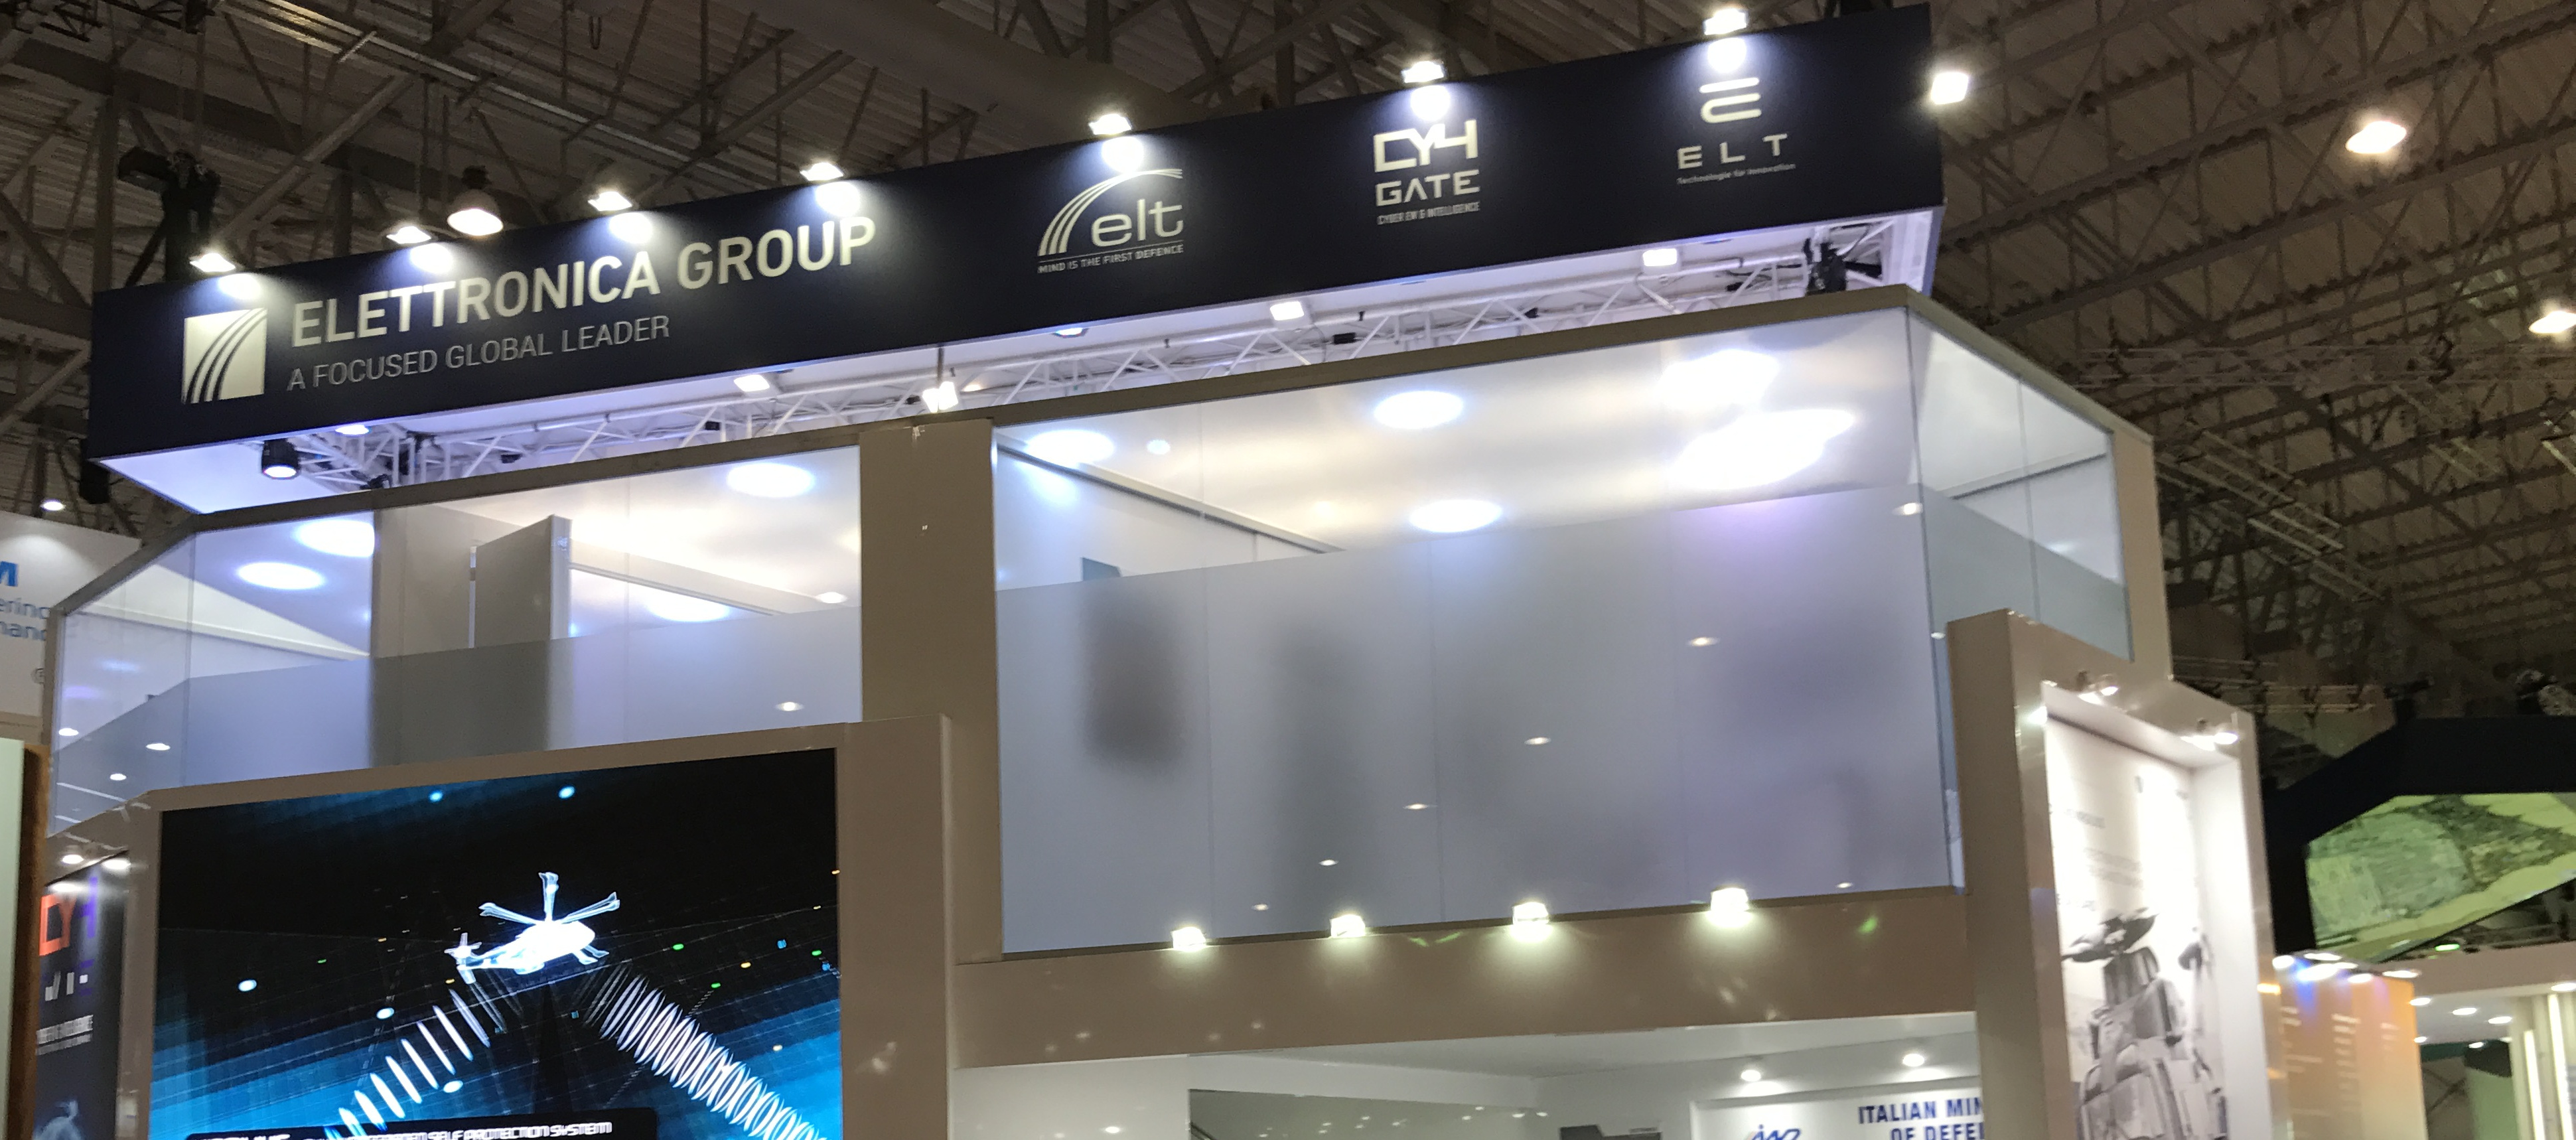 ELETTRONICA GROUP - DUBAI AIR SHOW